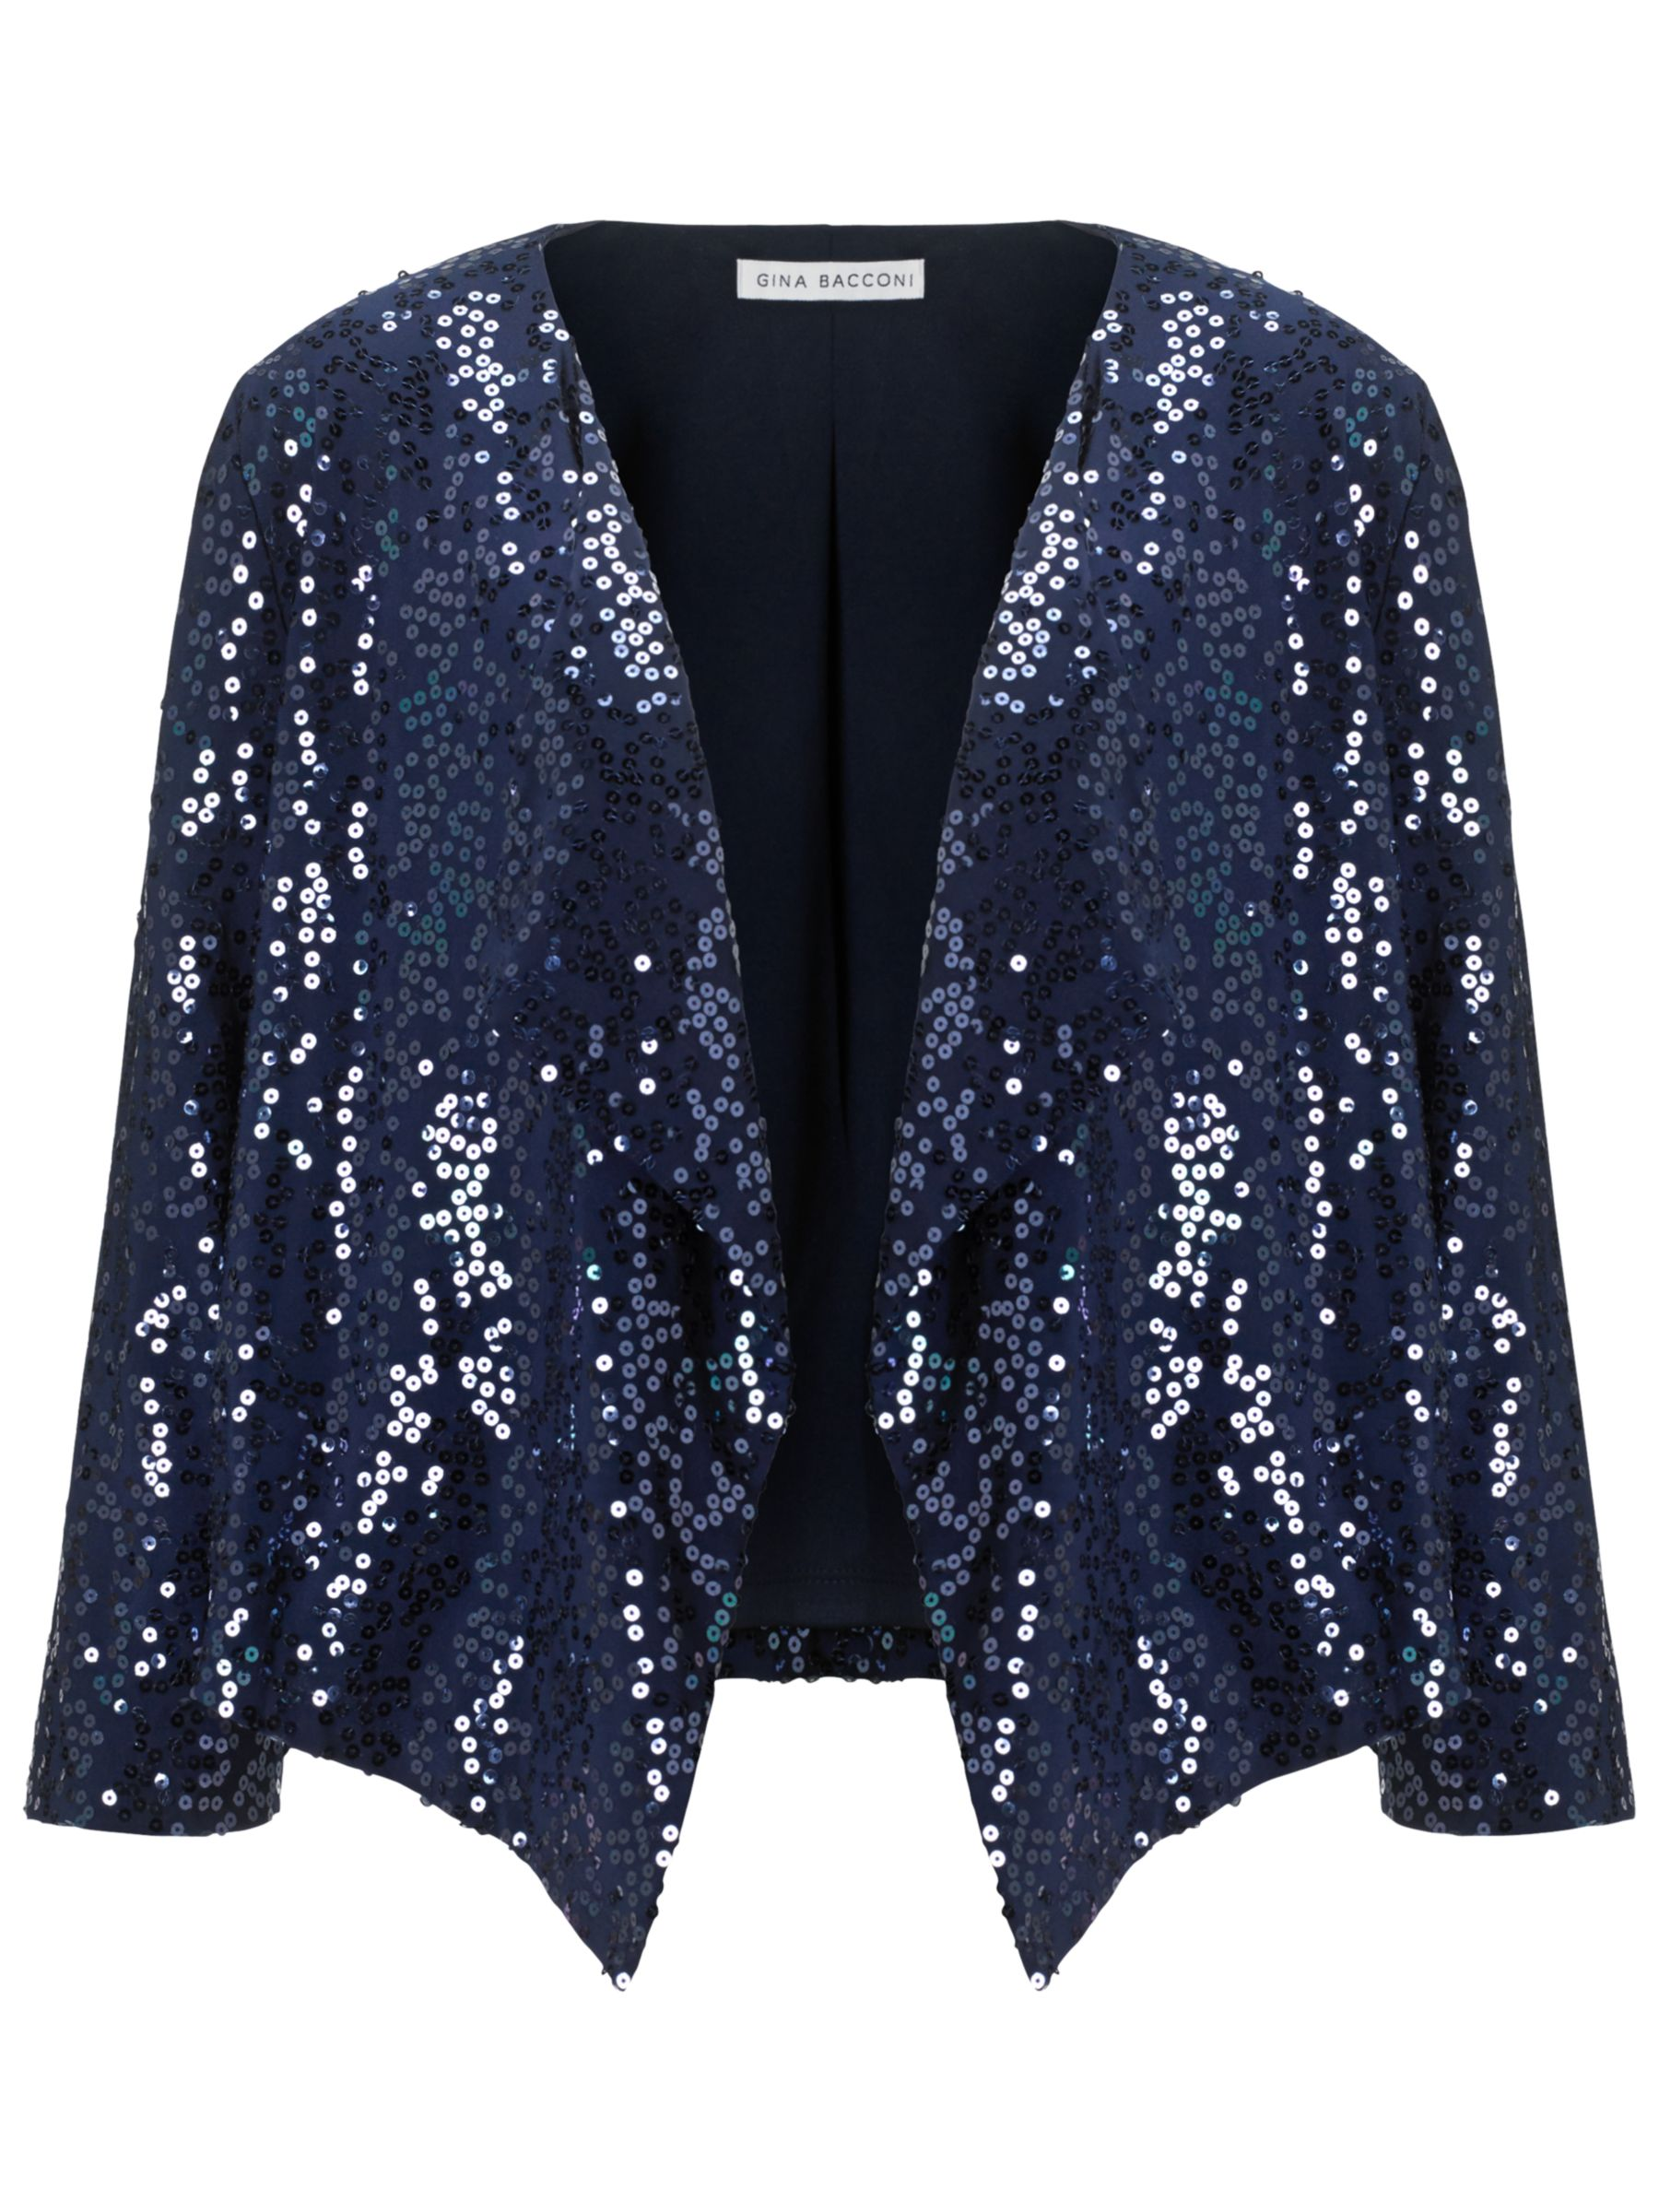 Gina Bacconi Sequined Jacket, Spring Navy